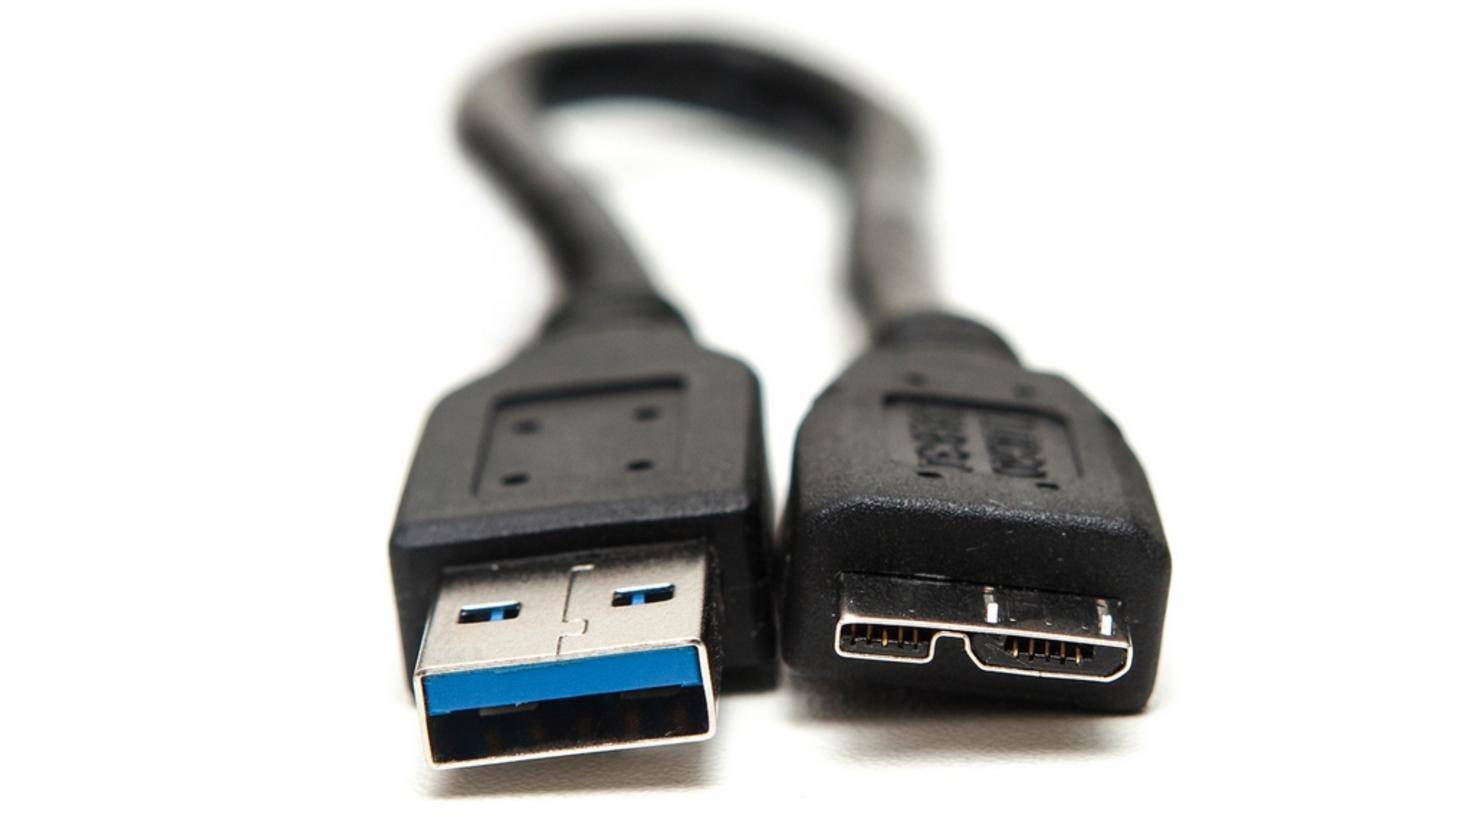 USB 3.0 cable with type A and Micro-B type connector